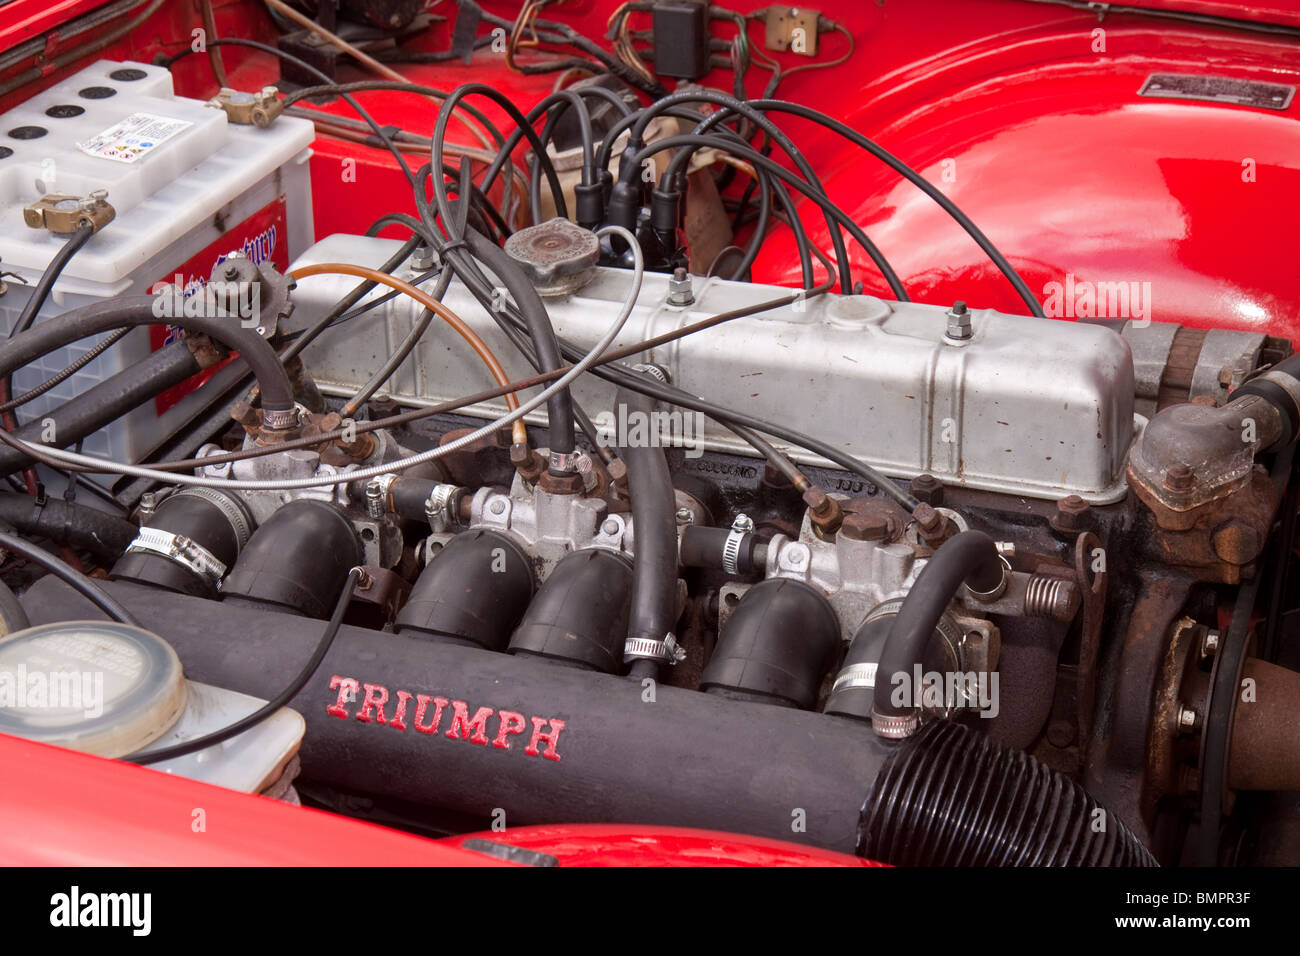 Triumph Tr6 Classic Car Six Cylinder Fuel Injected Engine Stock